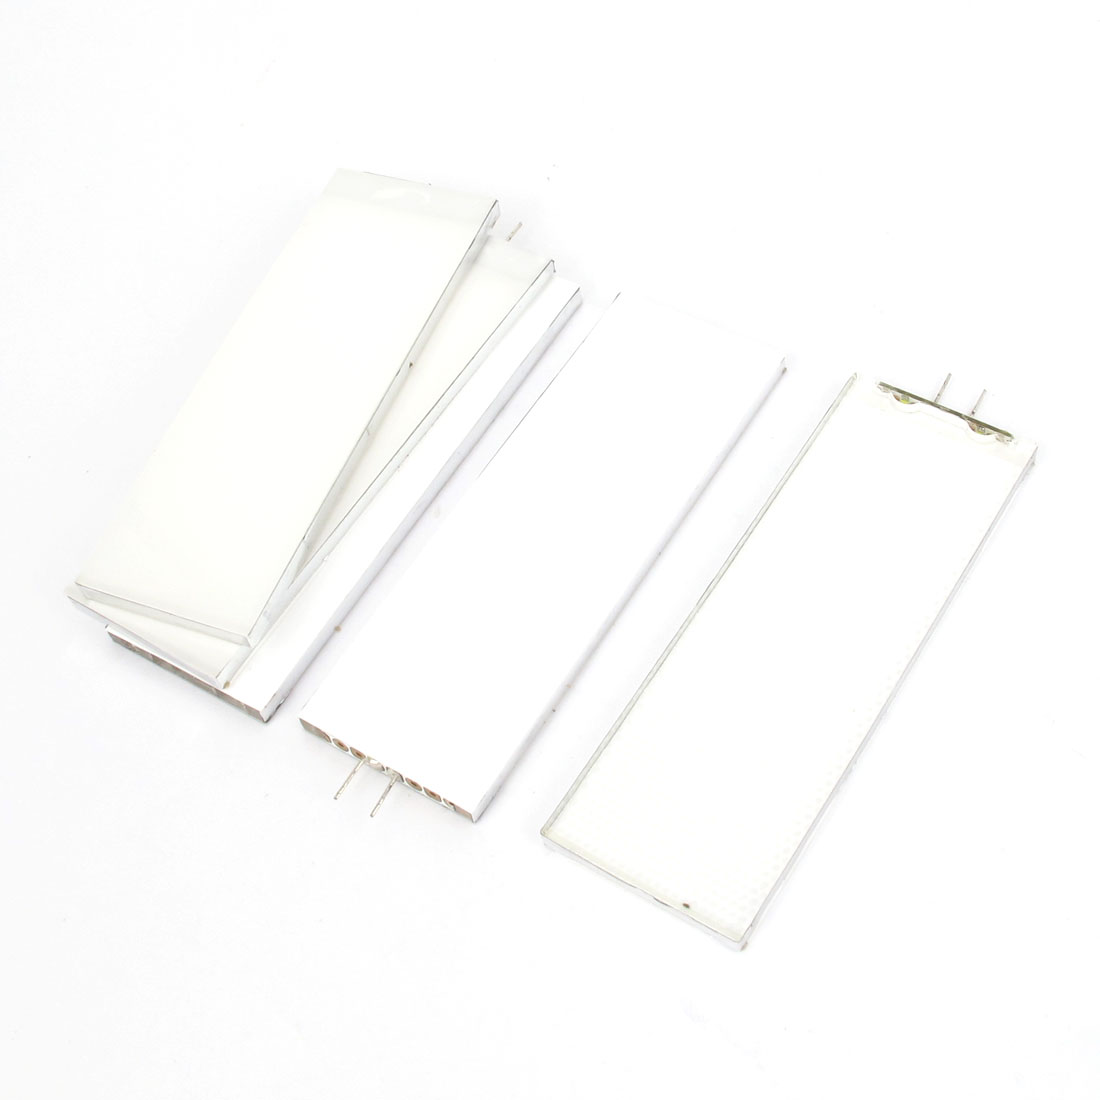 5 Pieces DC 3V Bottom White Rectangle Led Backlight Panel for Lcd Display